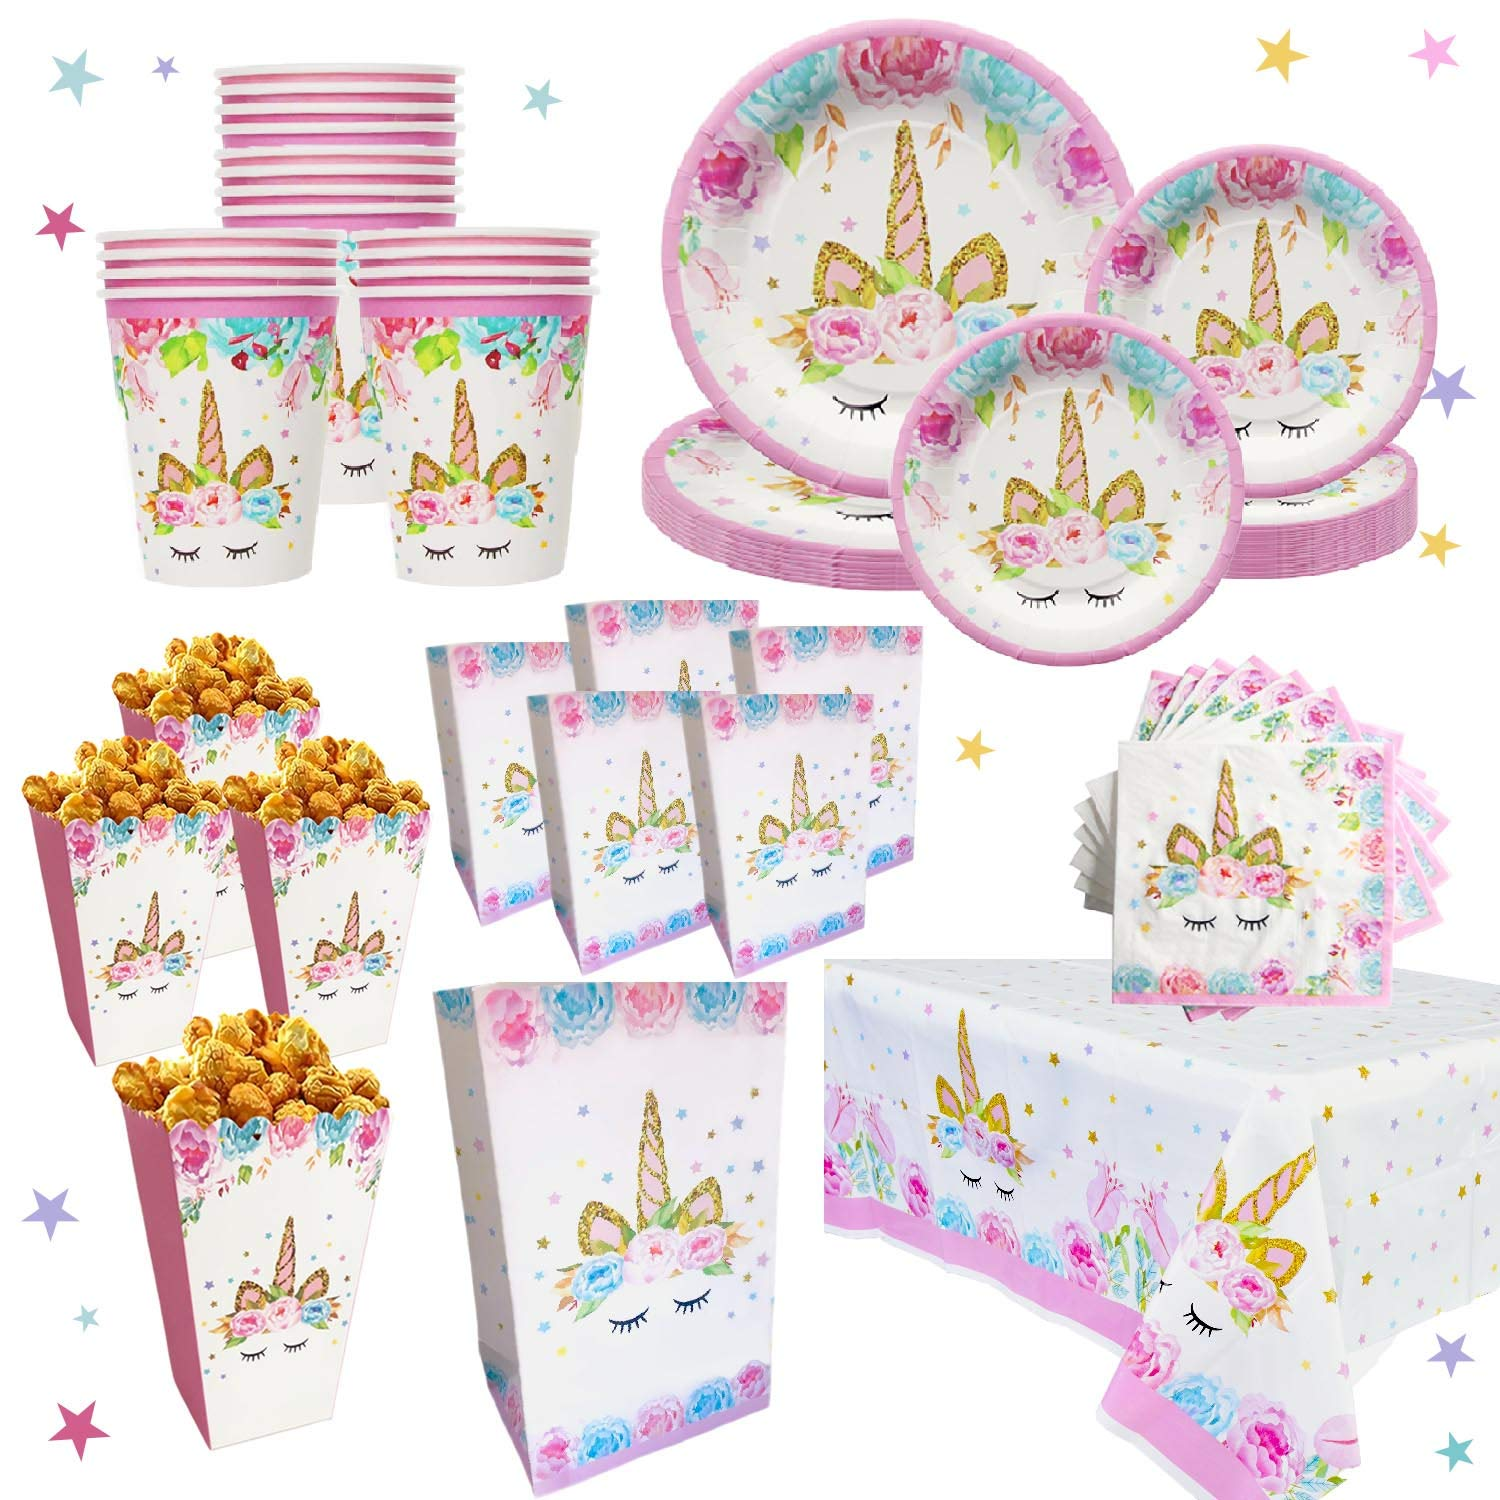 Amazon.com: Unicorn Party Supplies Set for 16 | Plates, Cups,Table ...